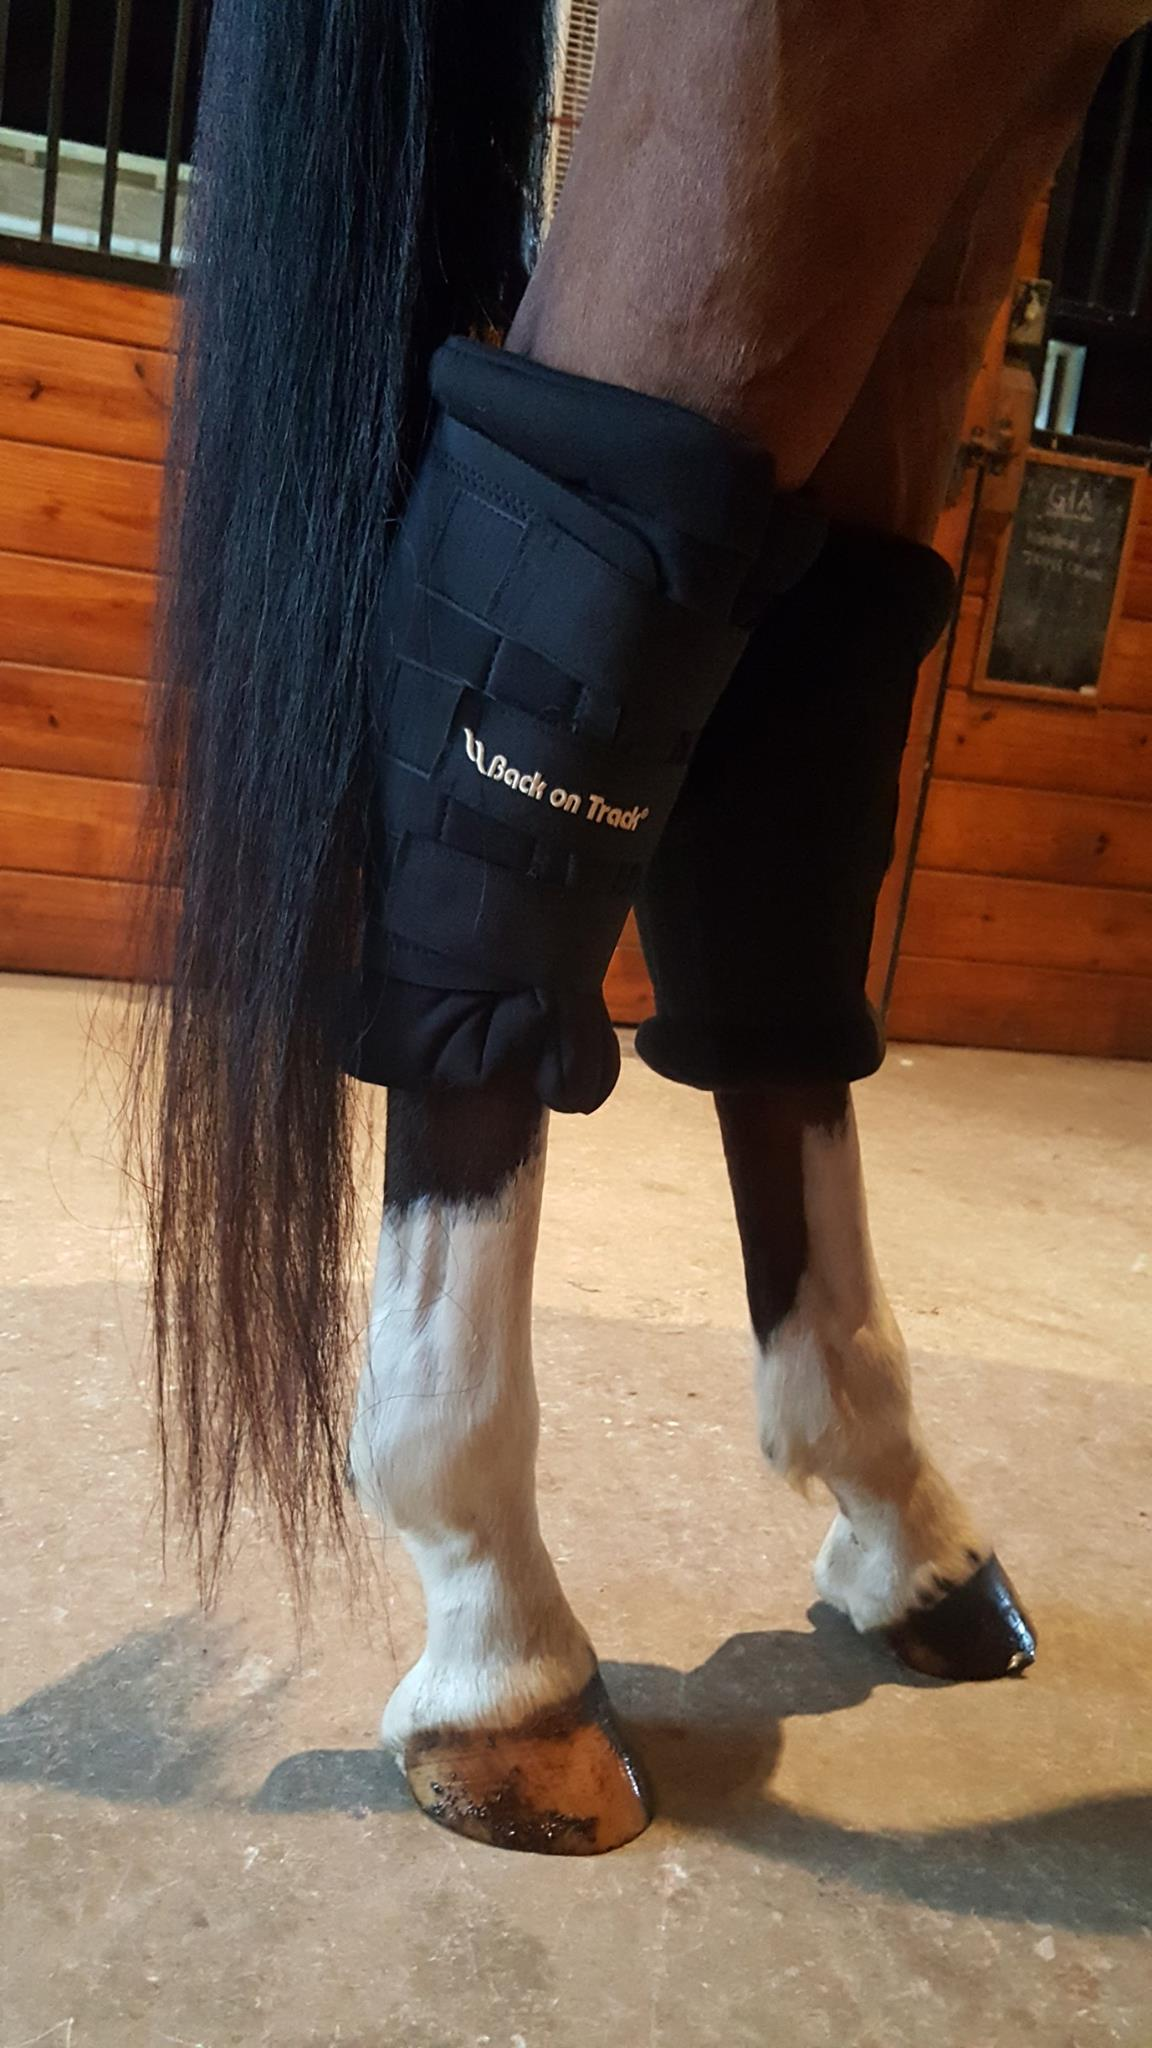 Did you know Back on Track USA makes Padded Hock Boots?